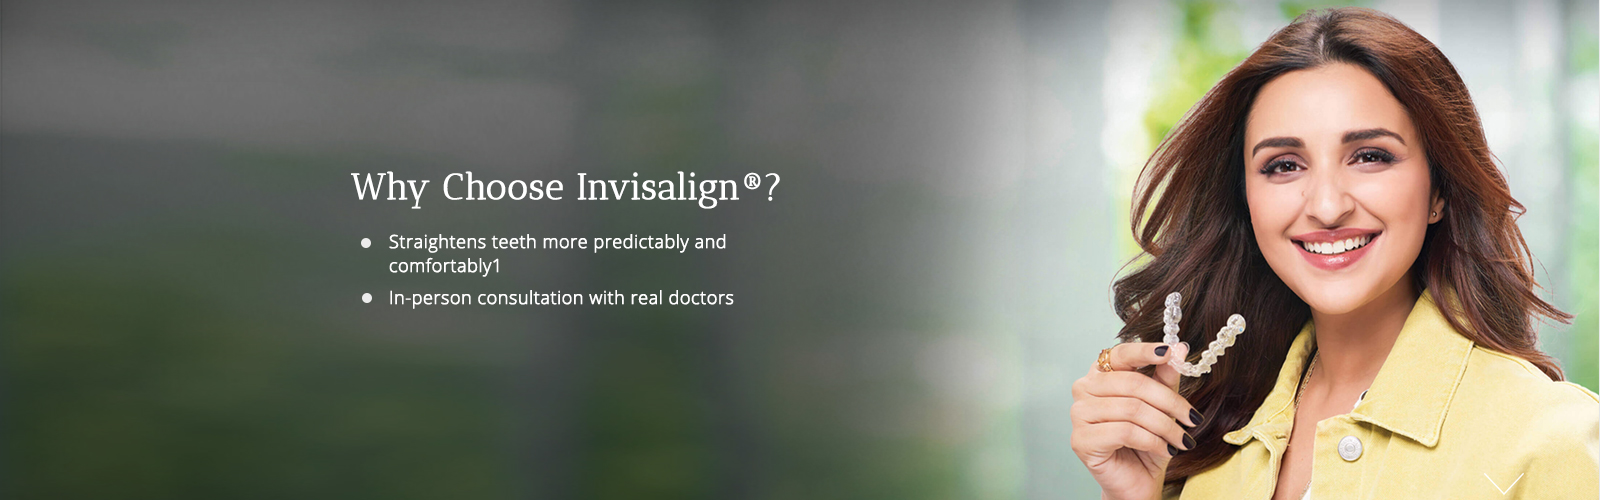 invisalign-dents-bretelles-en-inde